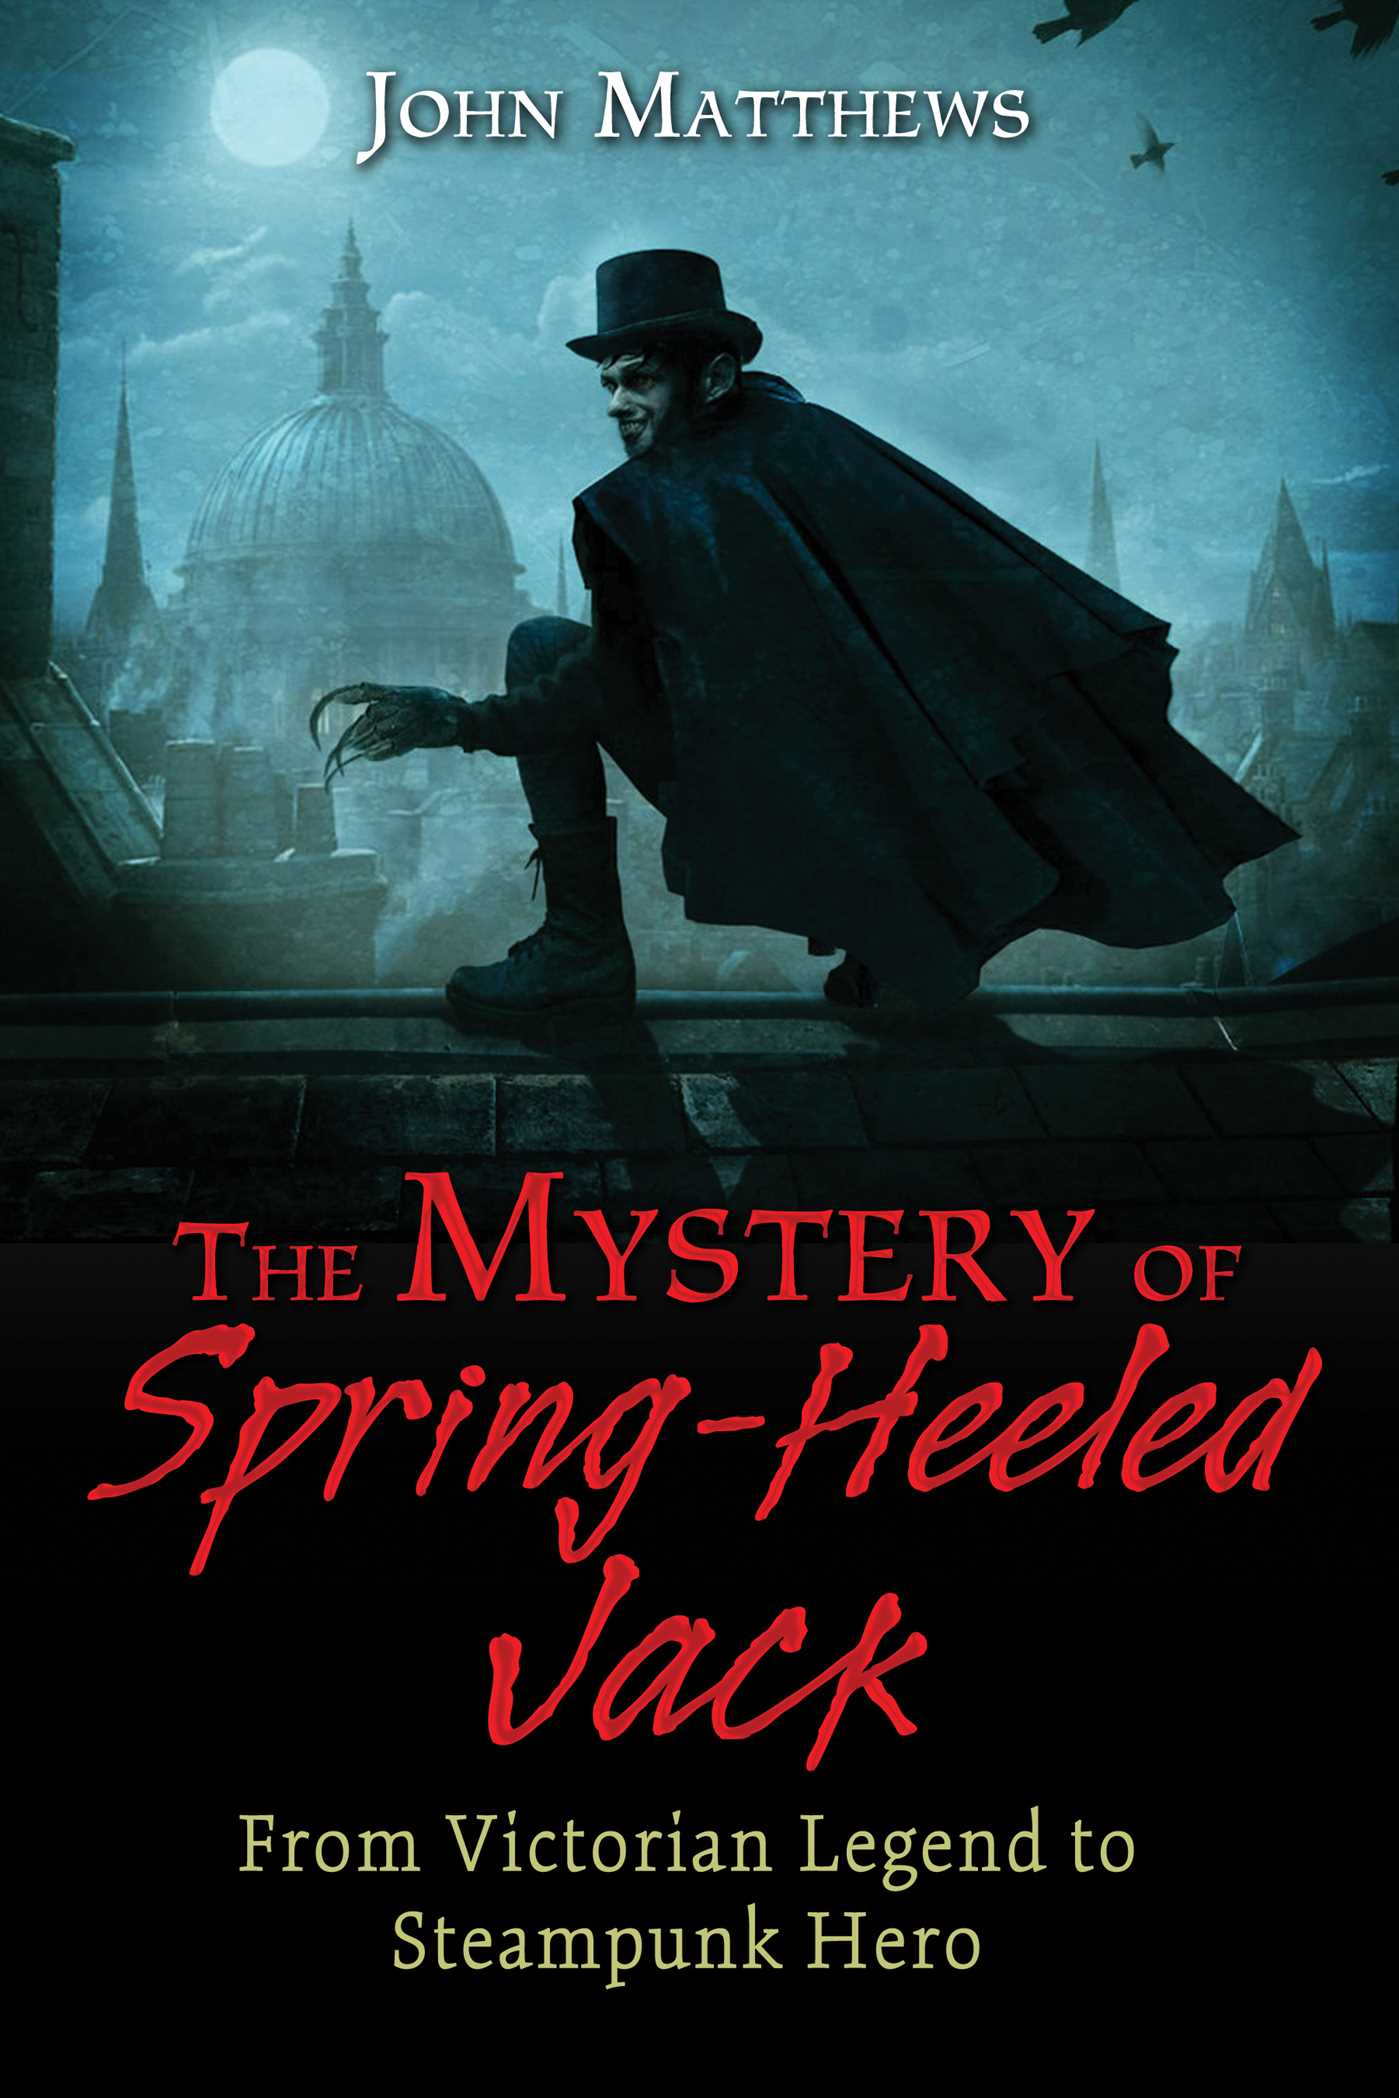 The mystery of spring heeled jack 9781620554968 hr